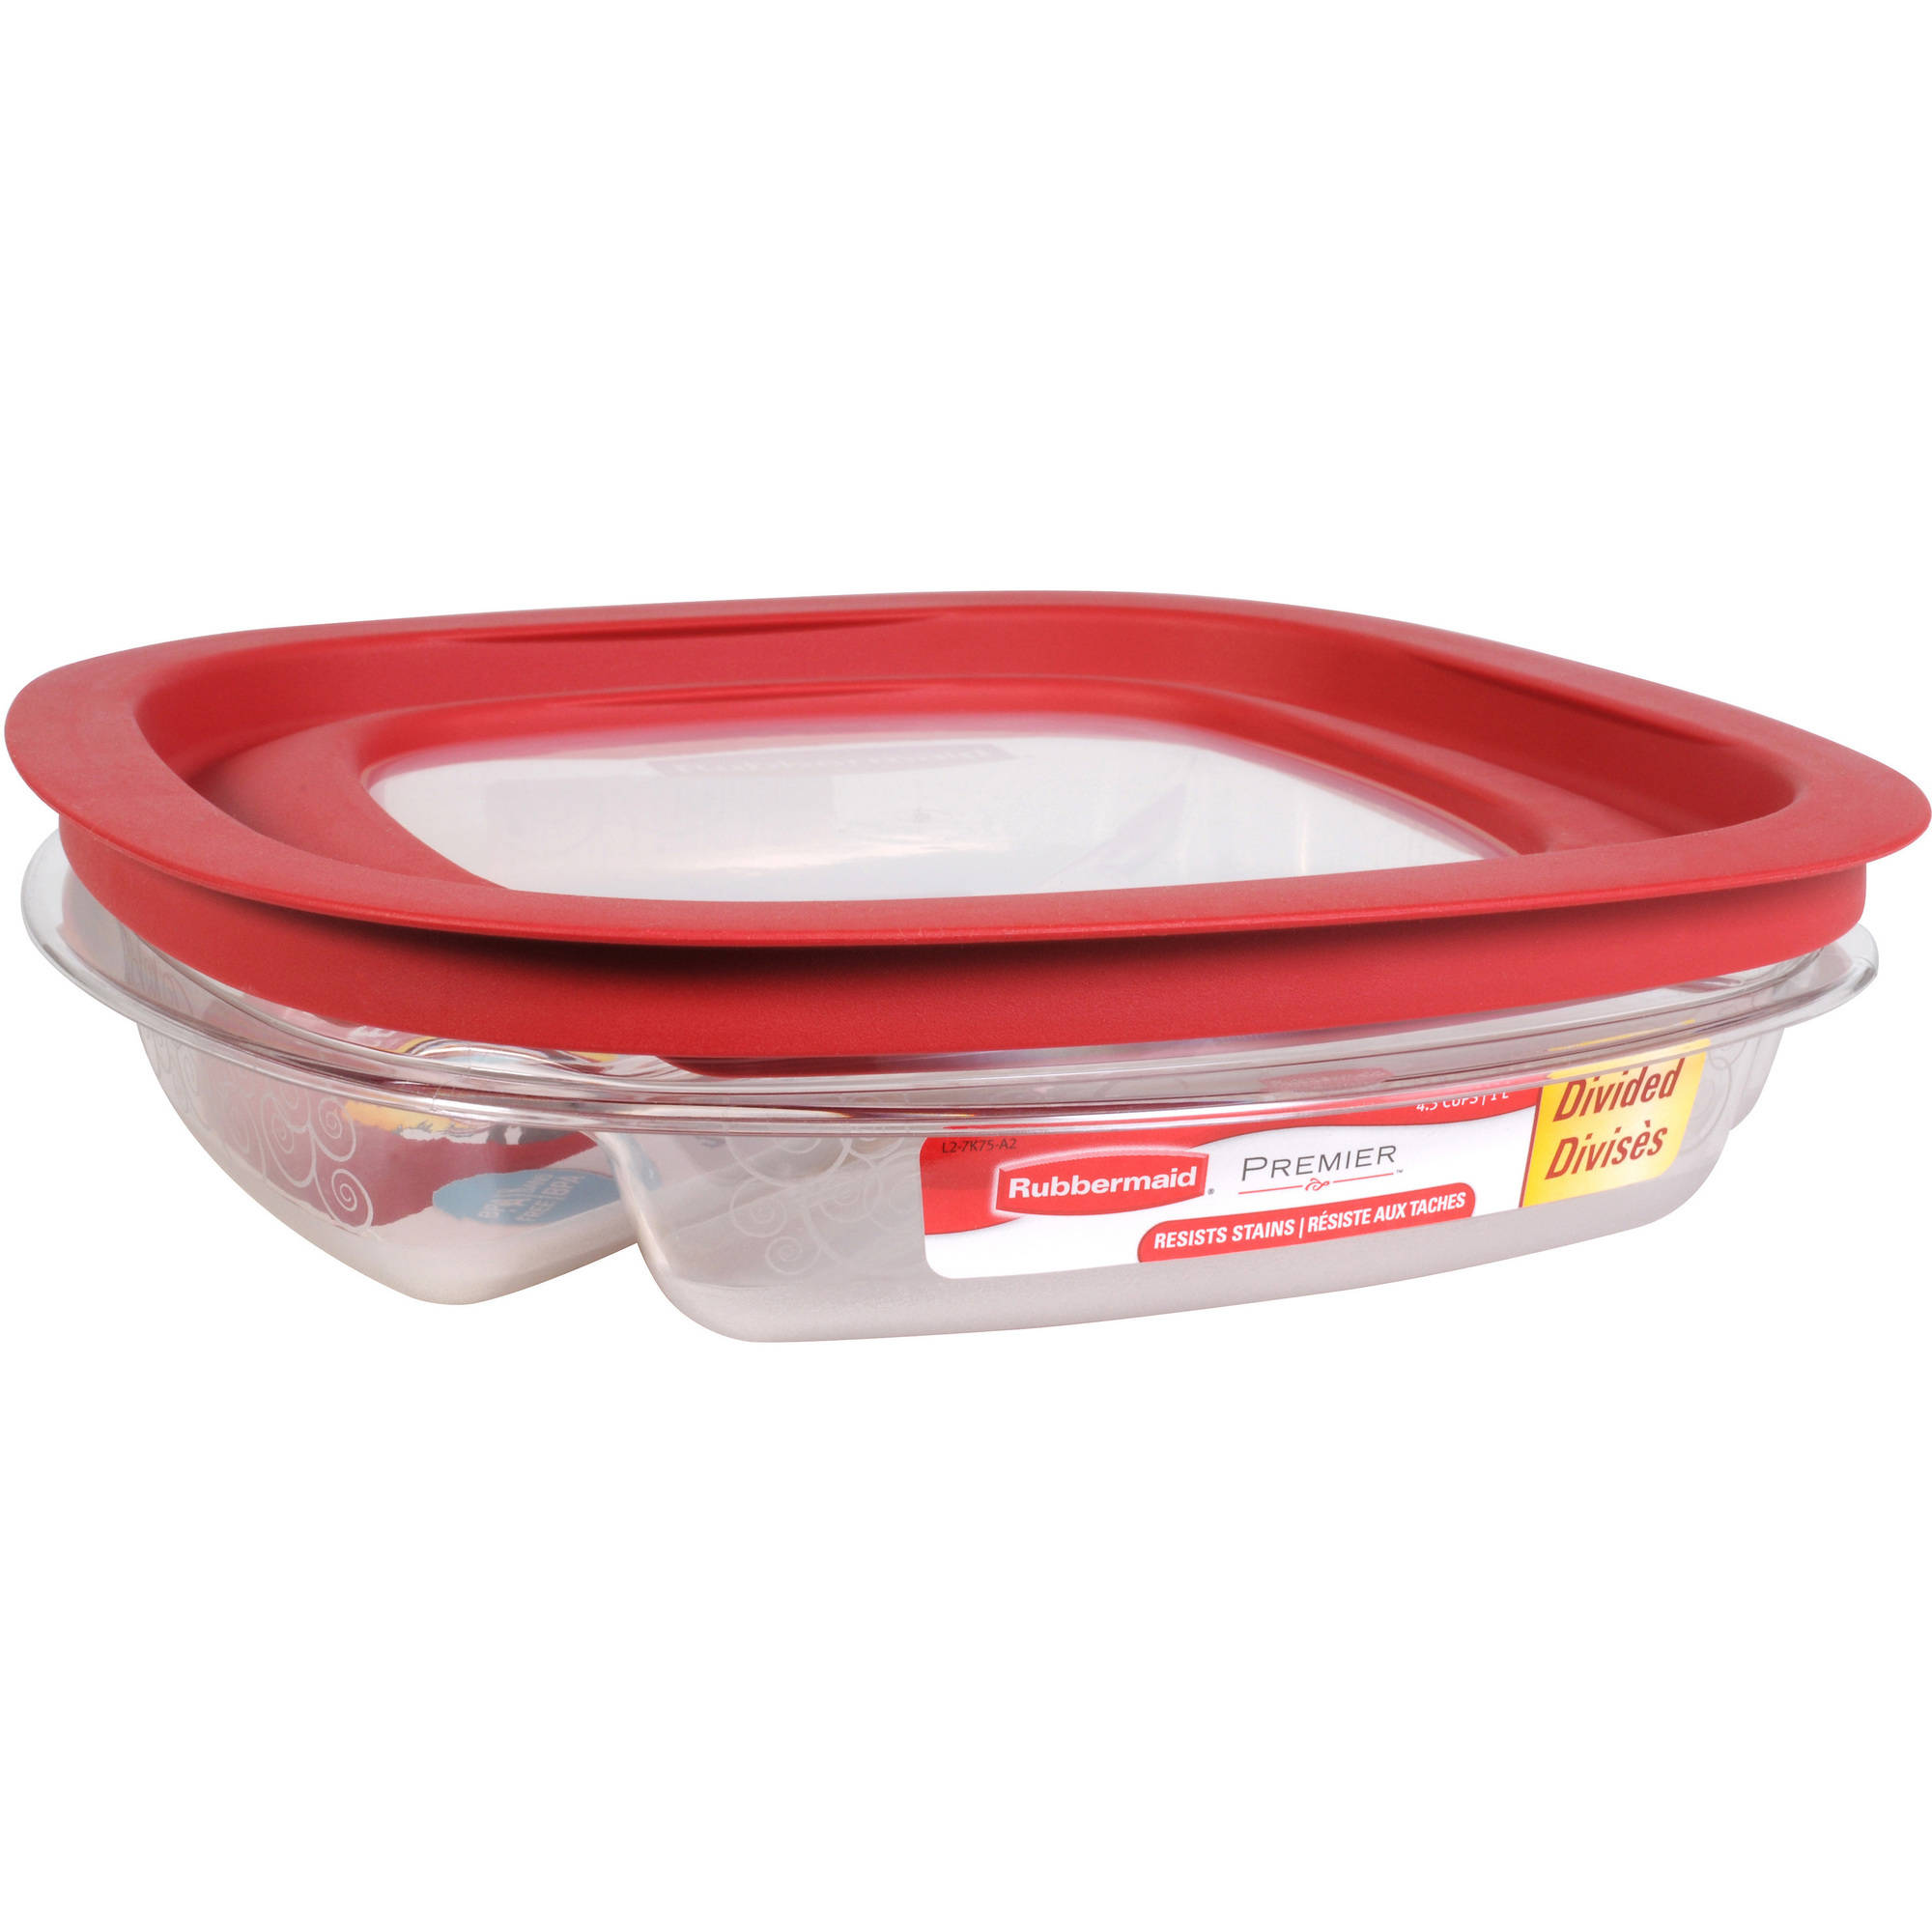 Rubbermaid FG7K75TRCHILI 43 Cup Divided Premier Food Storage